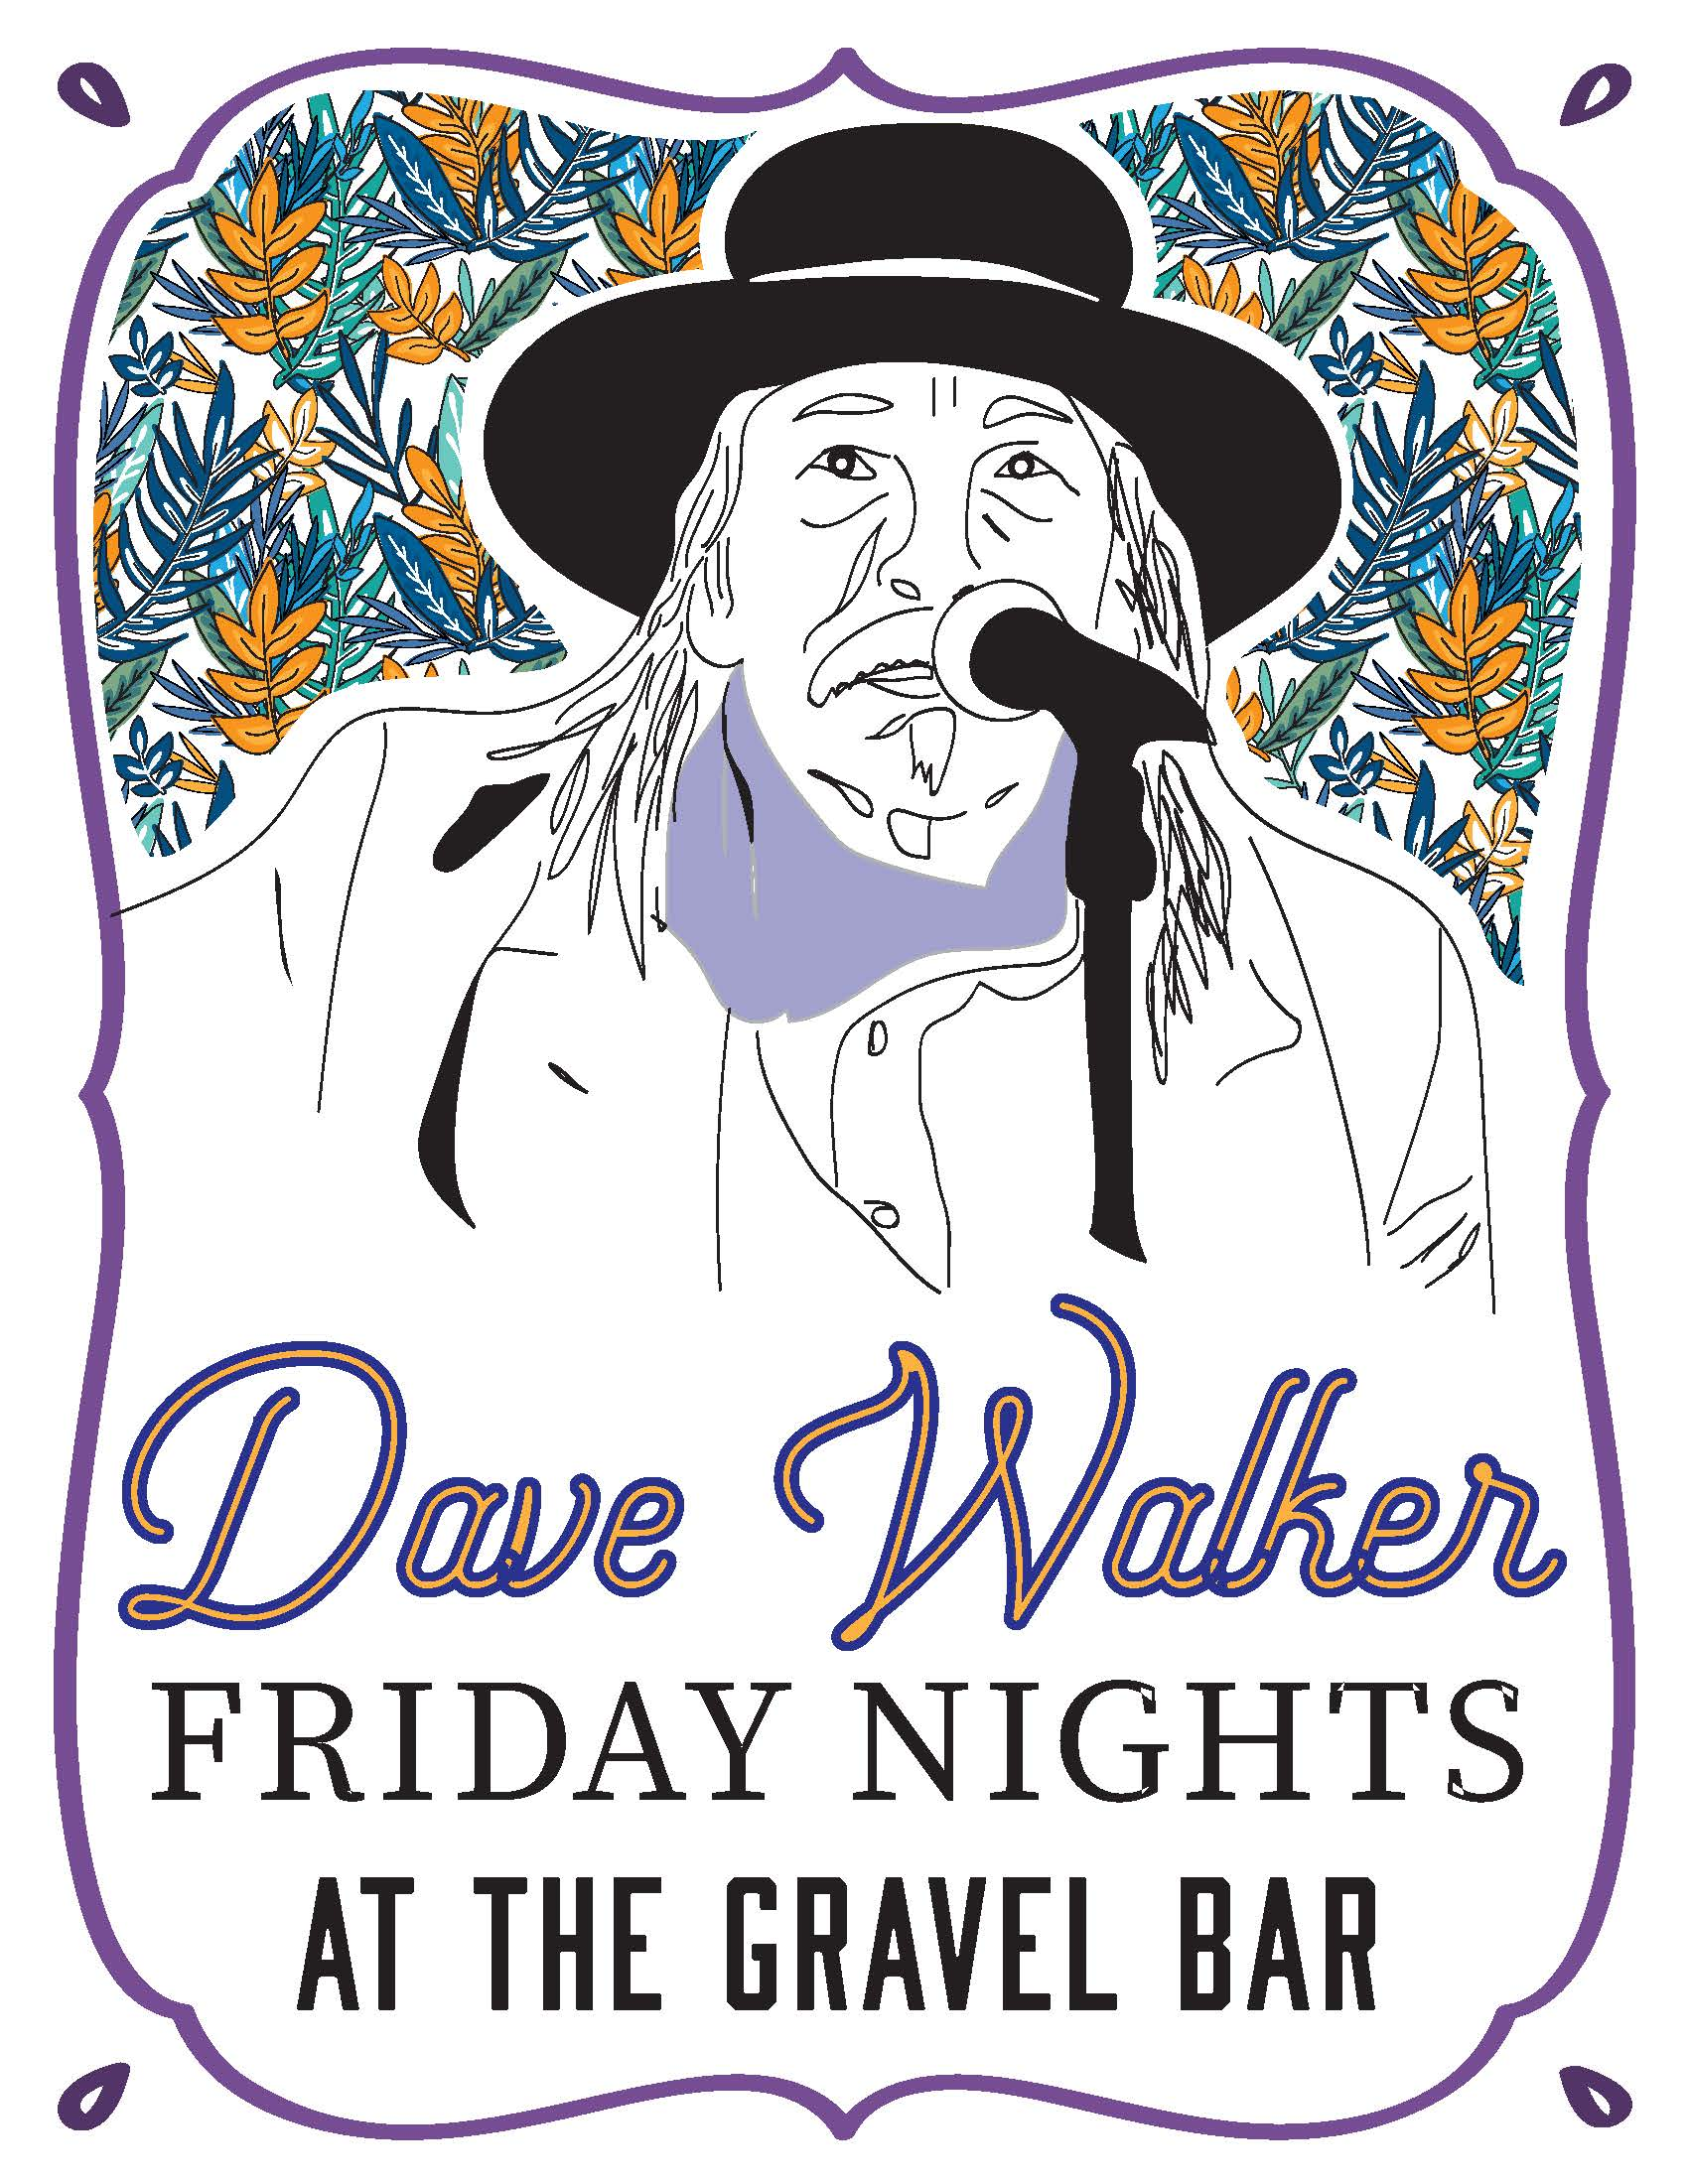 Dave Walker Winter Fridays Poster